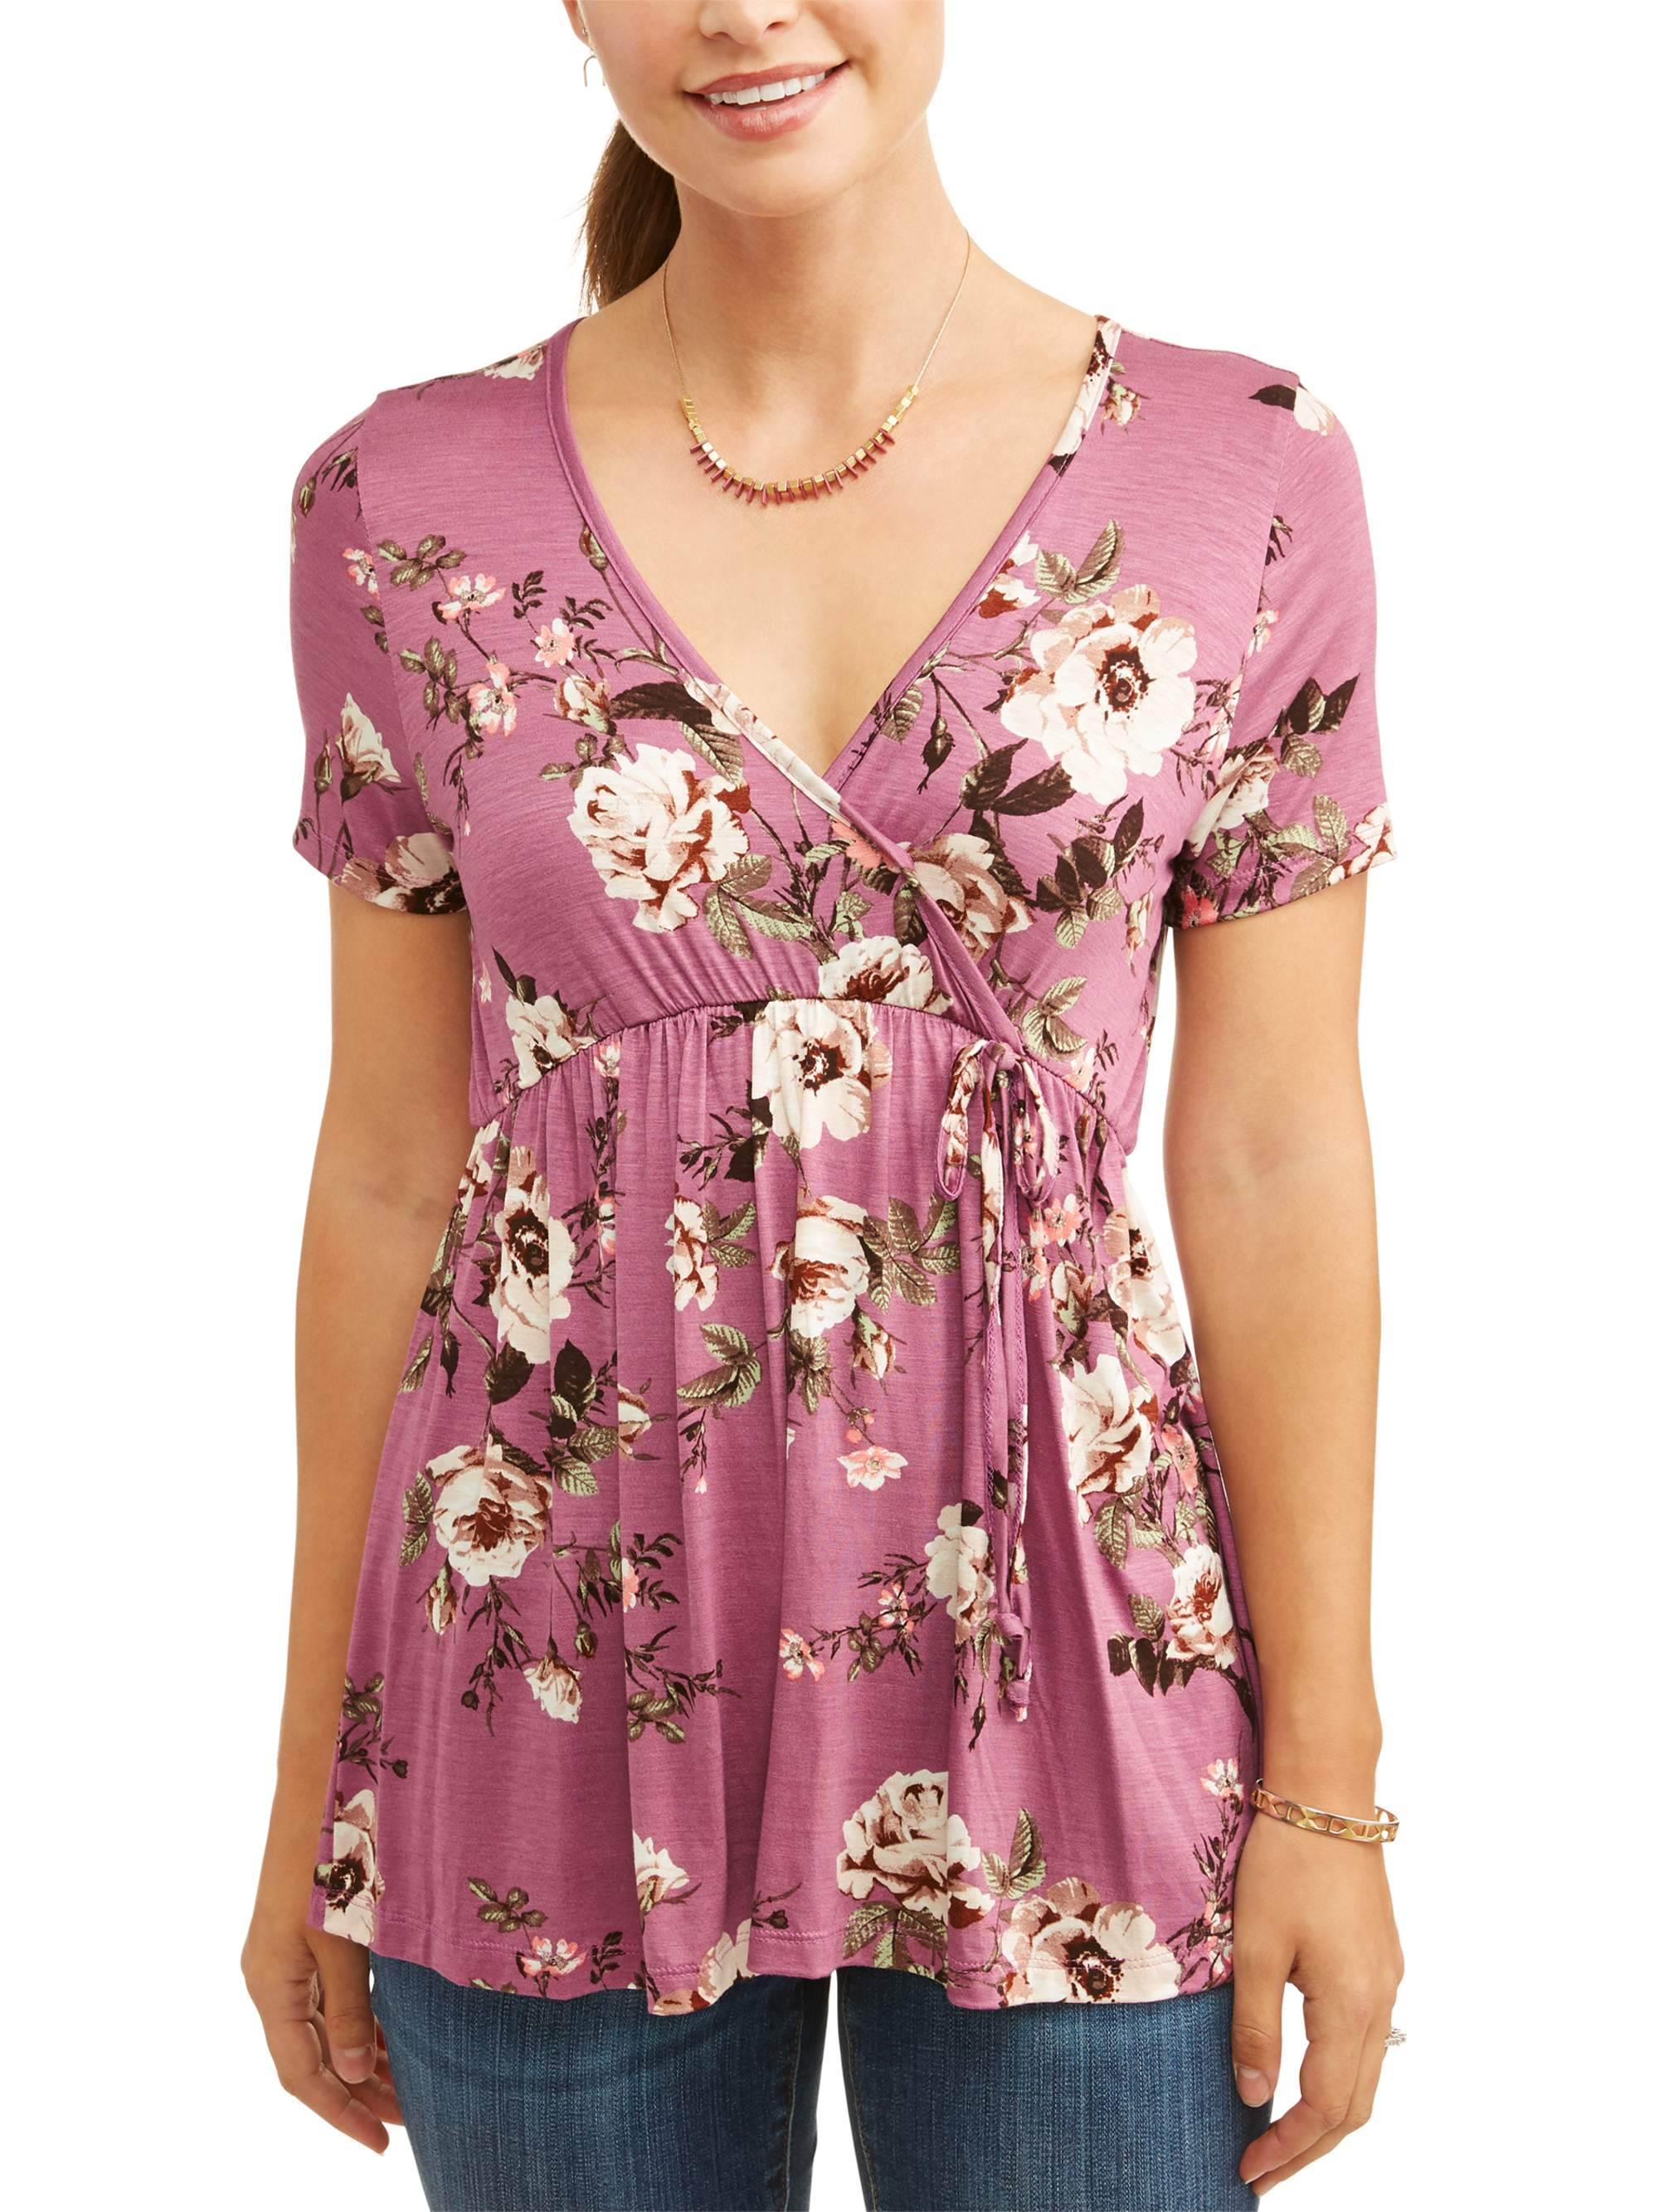 Maternity Baby Doll Floral Nursing Top